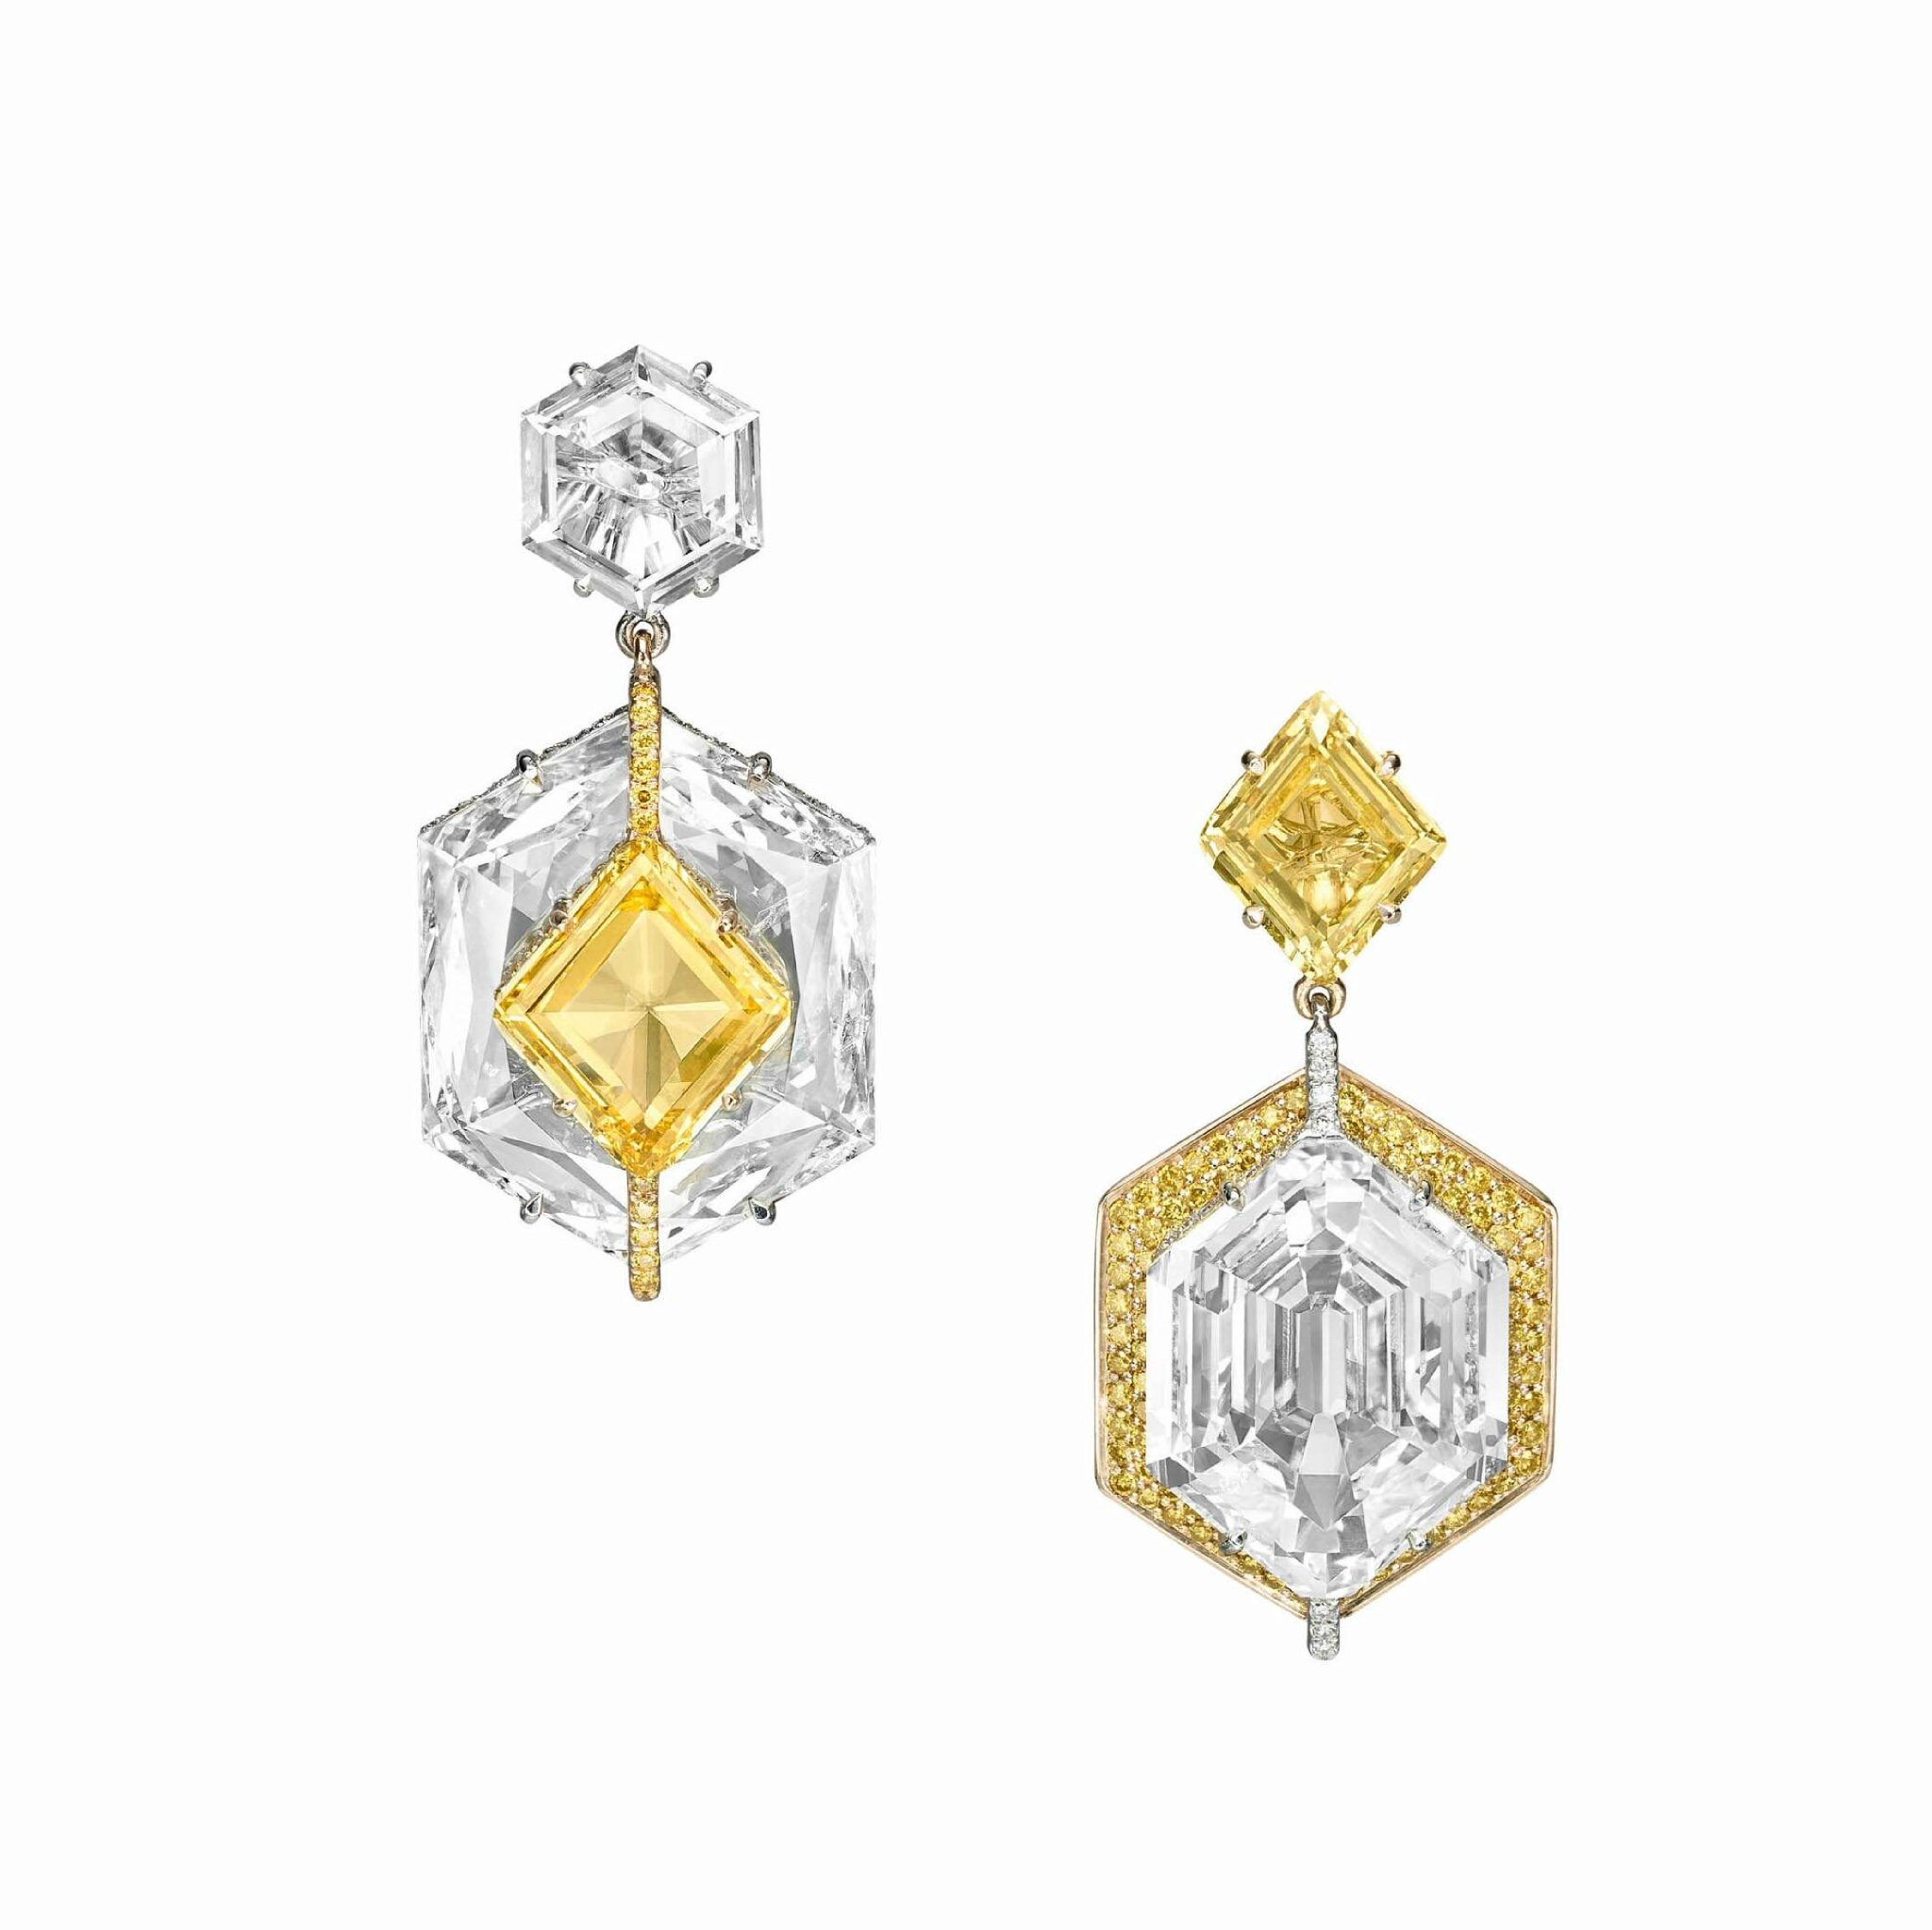 BOGH-ART, Yellow and white Kissing diamond earrings at